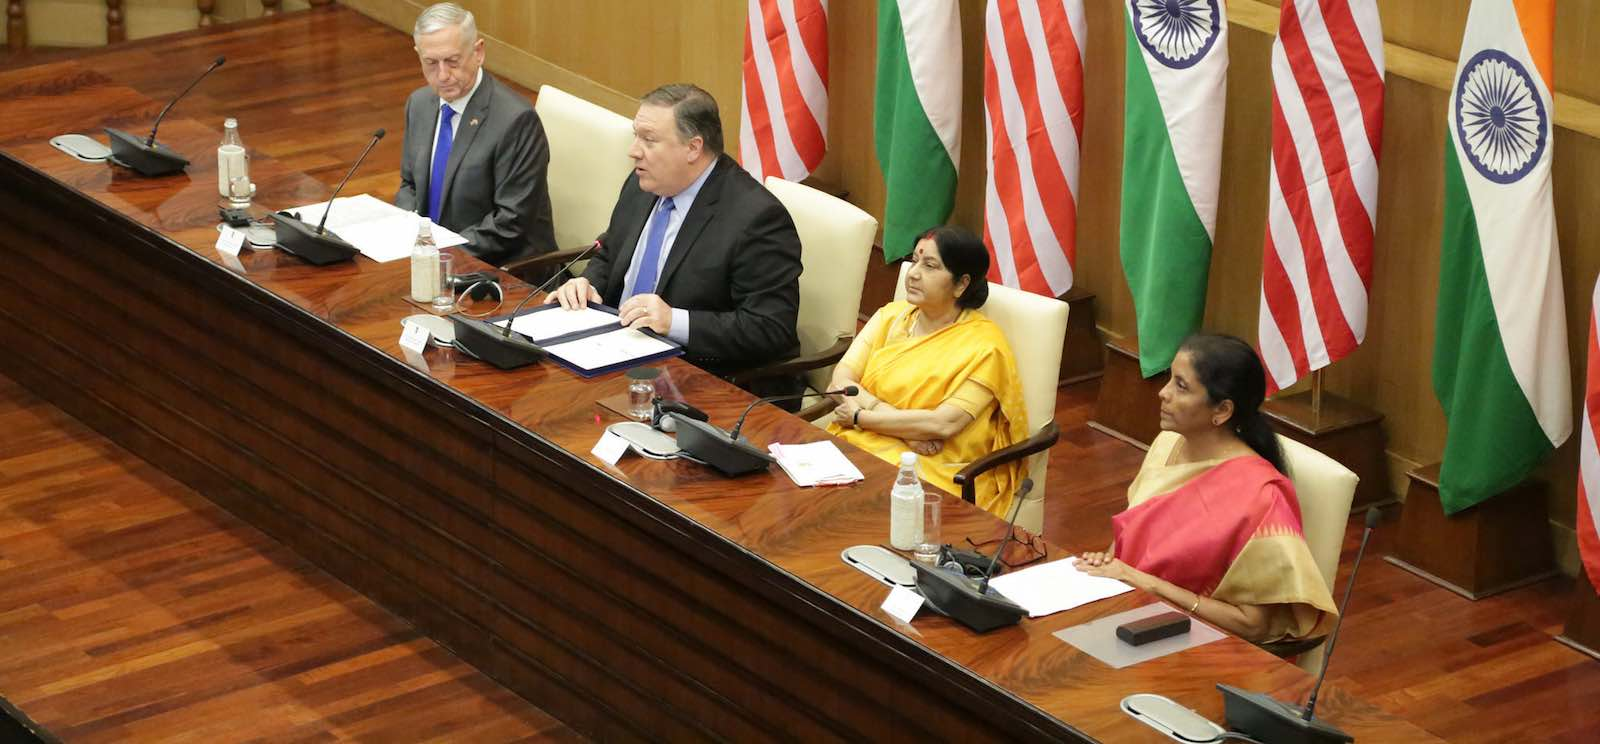 The India-US 2 + 2 Dialogue (Photo: State Department/Flickr)